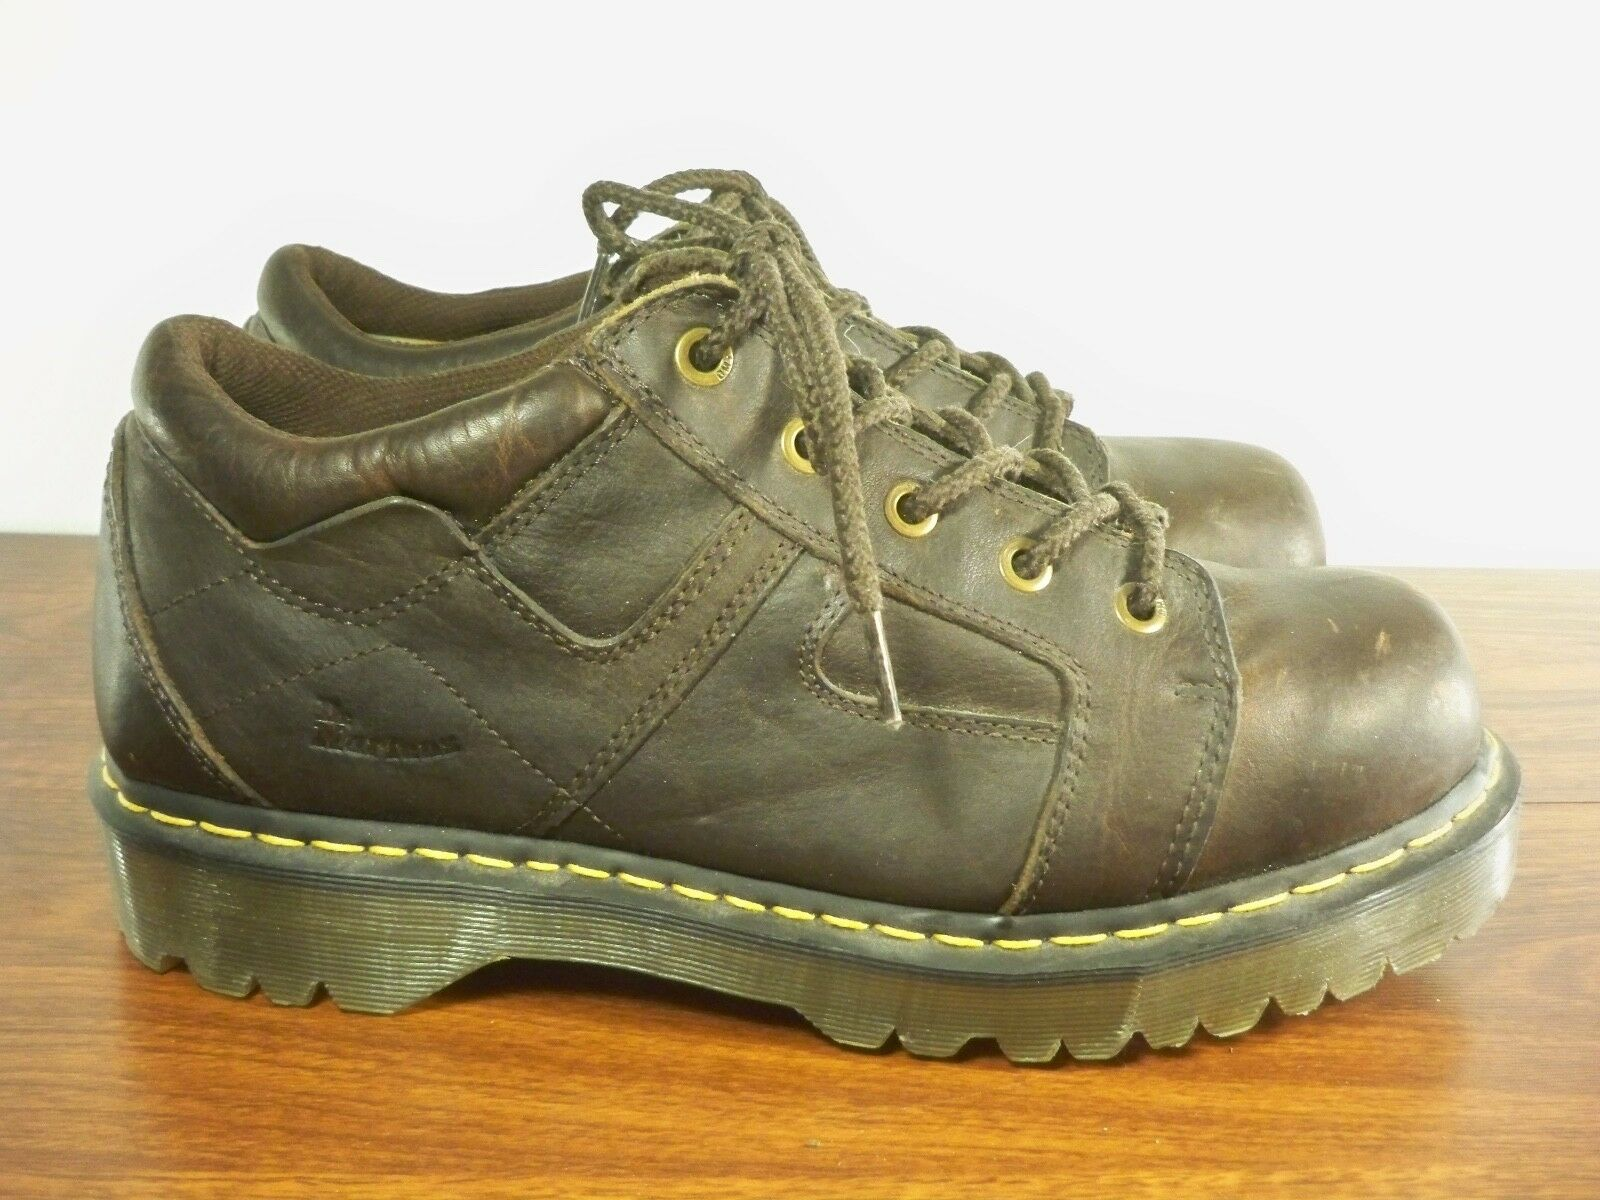 Dr. Martens 9B08 Mens Size 12 Brown Leather Chunky Casual shoes Boots Size 13 US